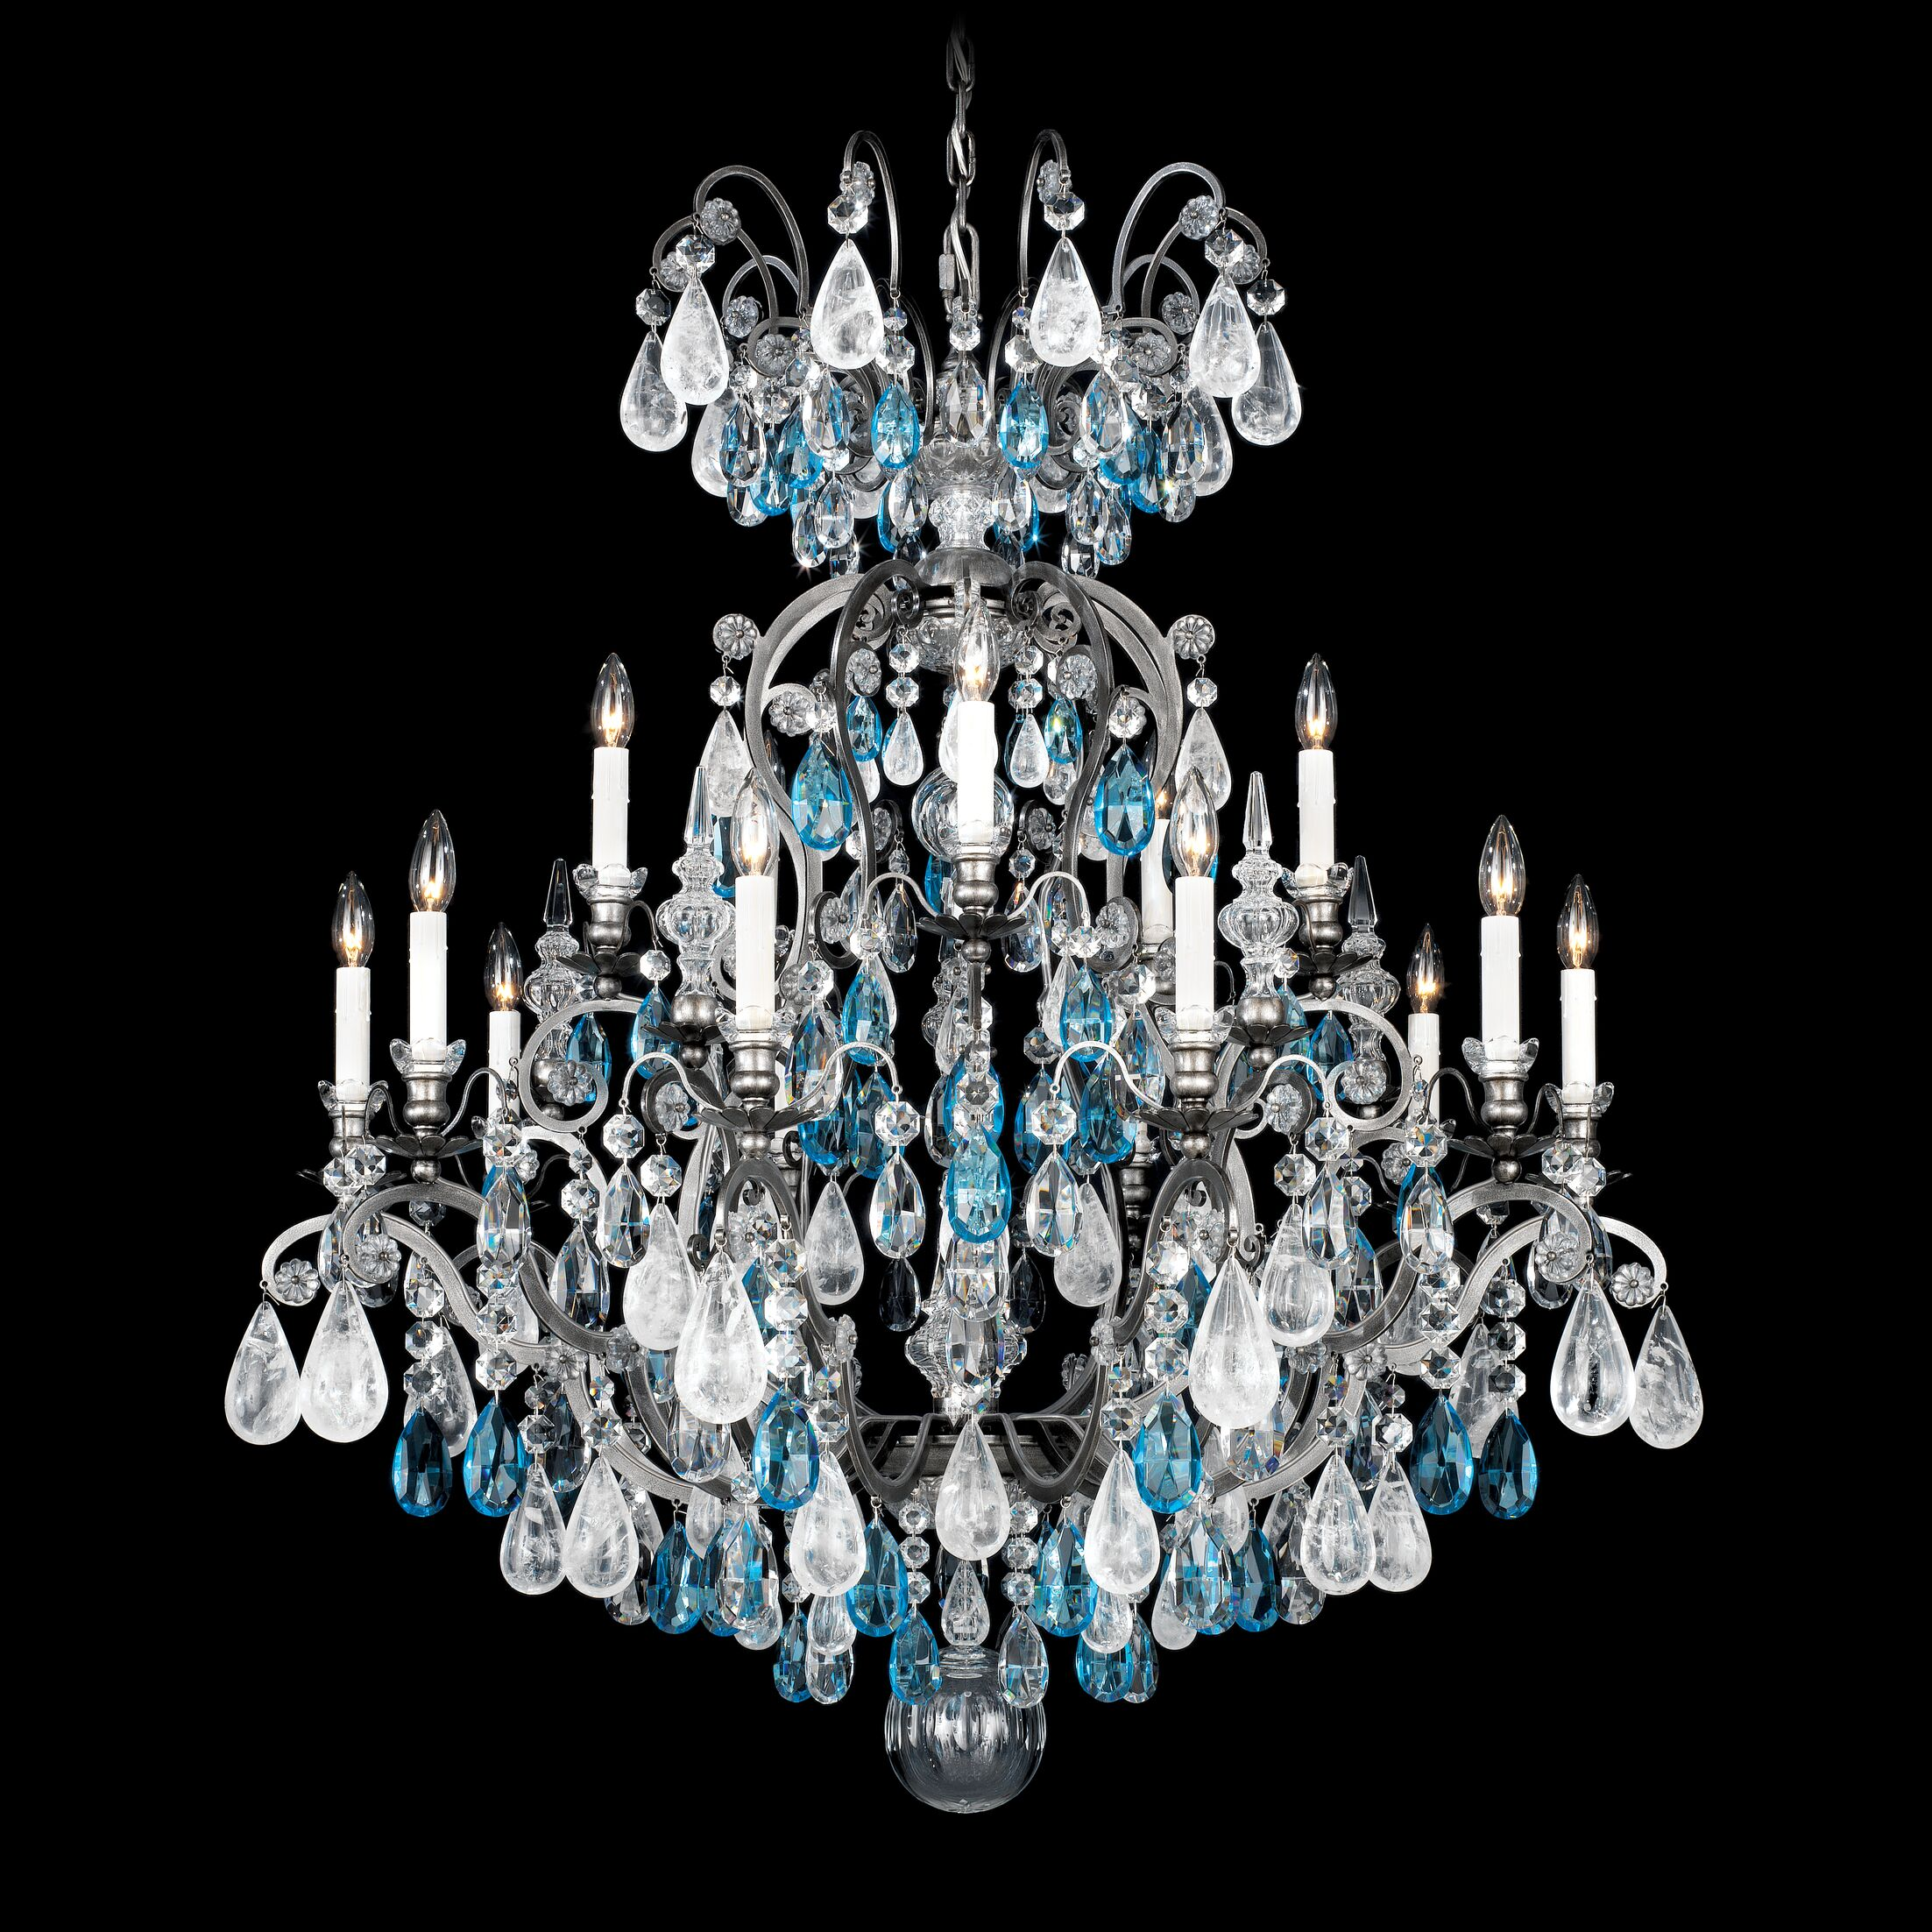 Renaissance Rock 15-Light Chandelier Finish: Etruscan Gold, Crystal Color: Combination of Olive and Smoke